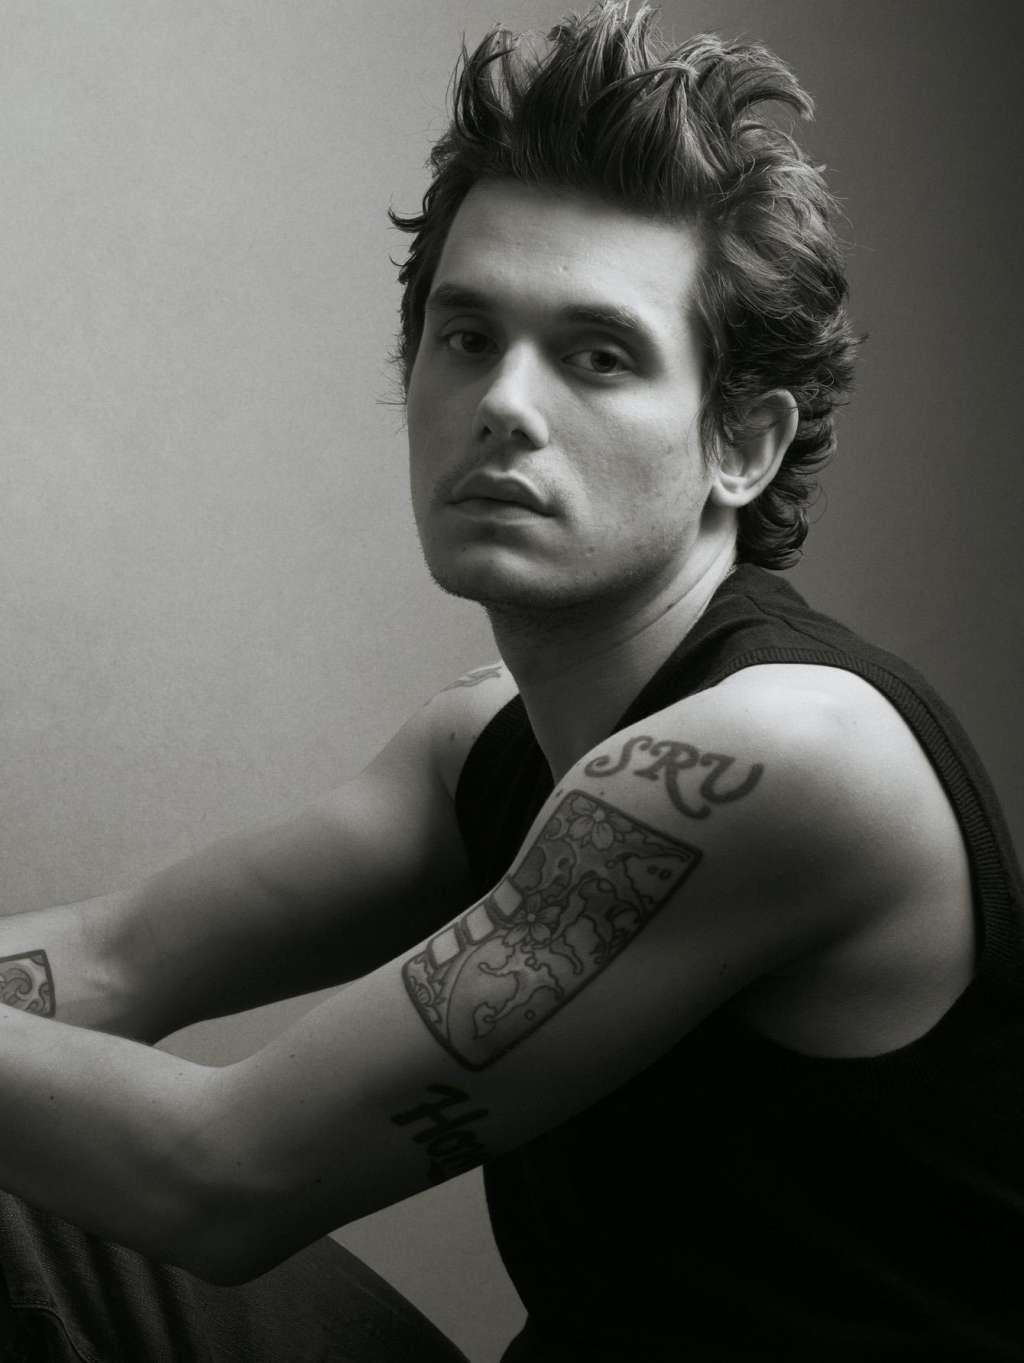 John Mayer SRV tattoo